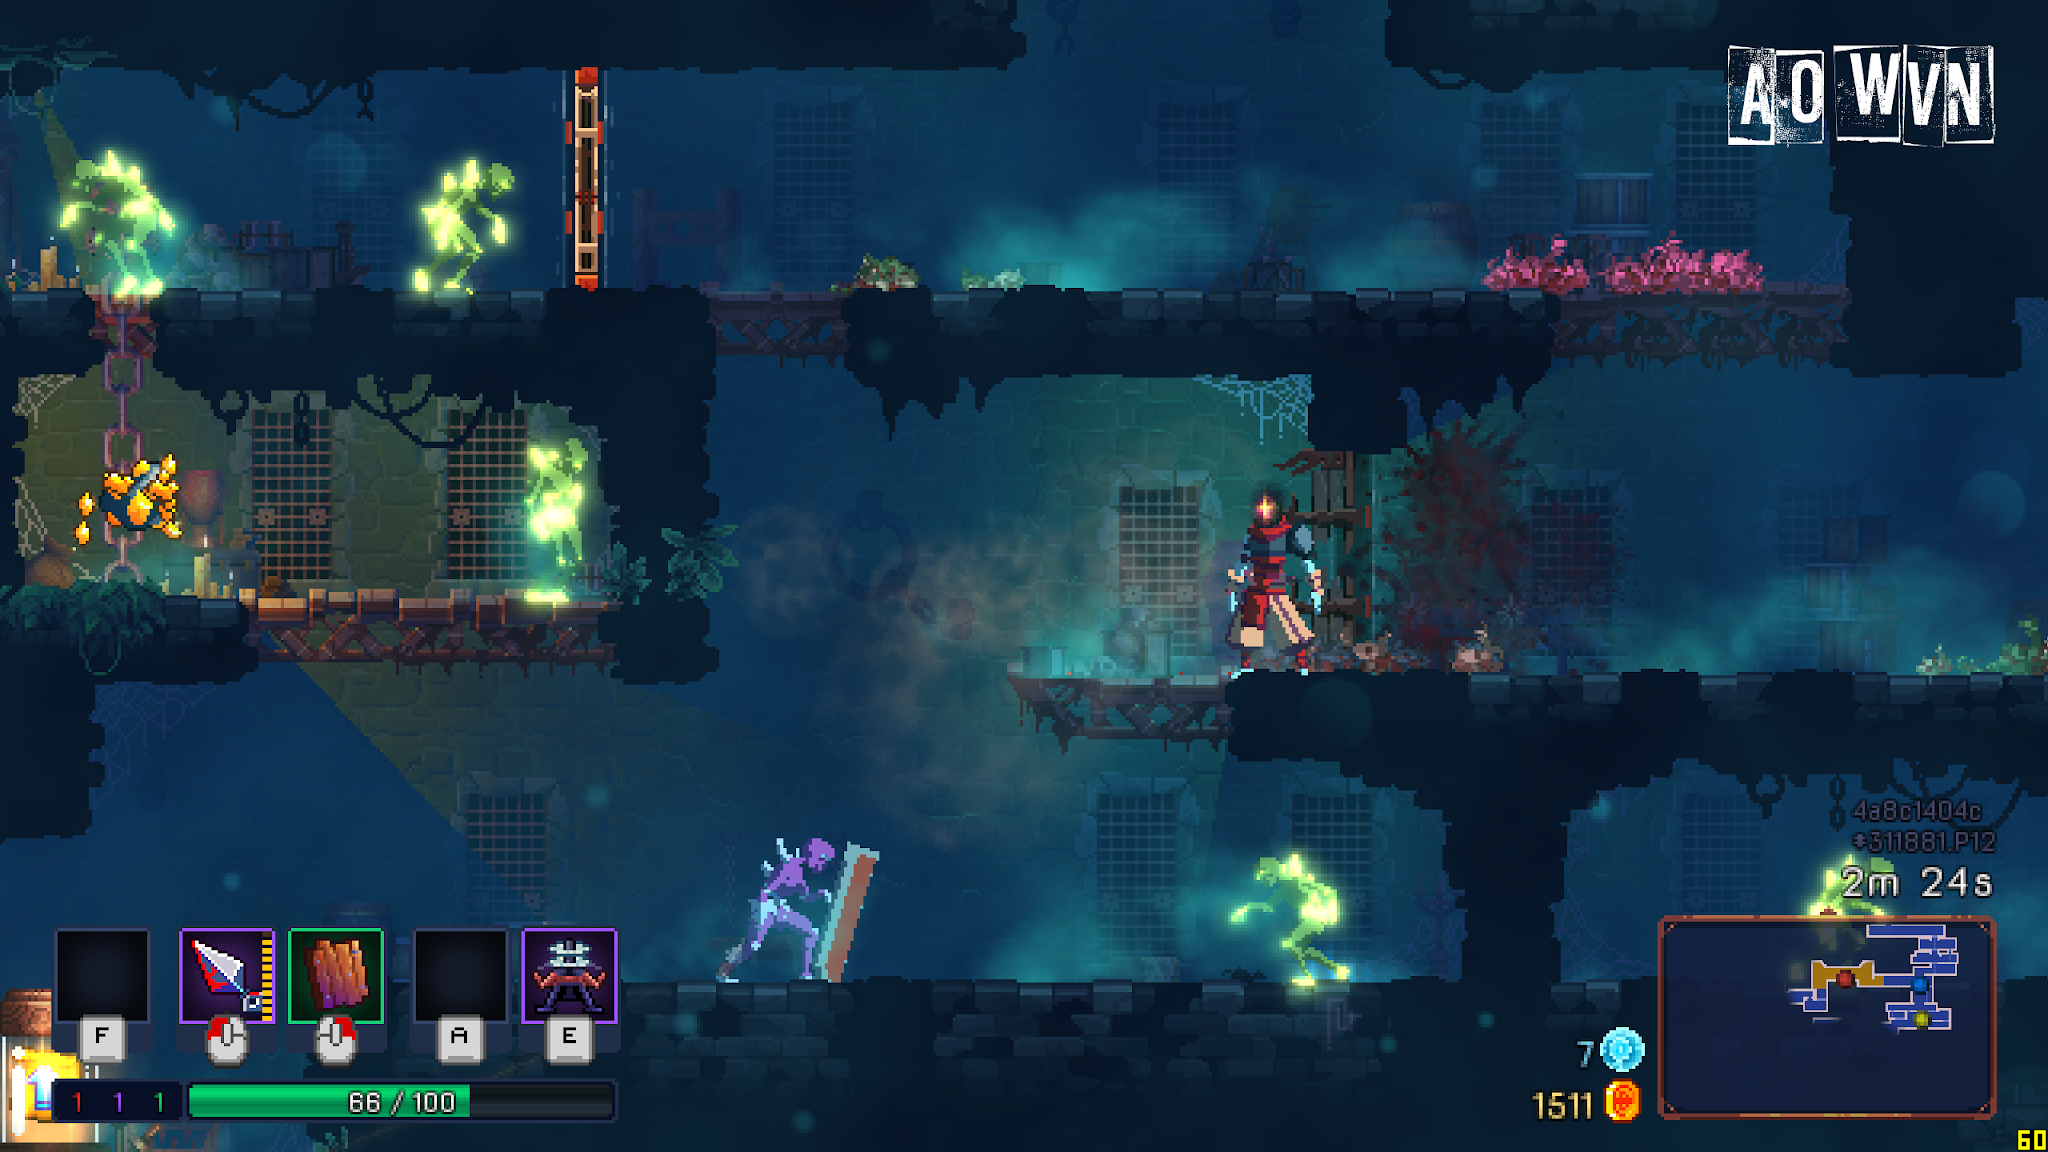 916104 dead cells windows screenshot you can tackle the enemies one - [ HOT ] Game Dead Cells | PC - Khi cái chết không phải sự kết thúc